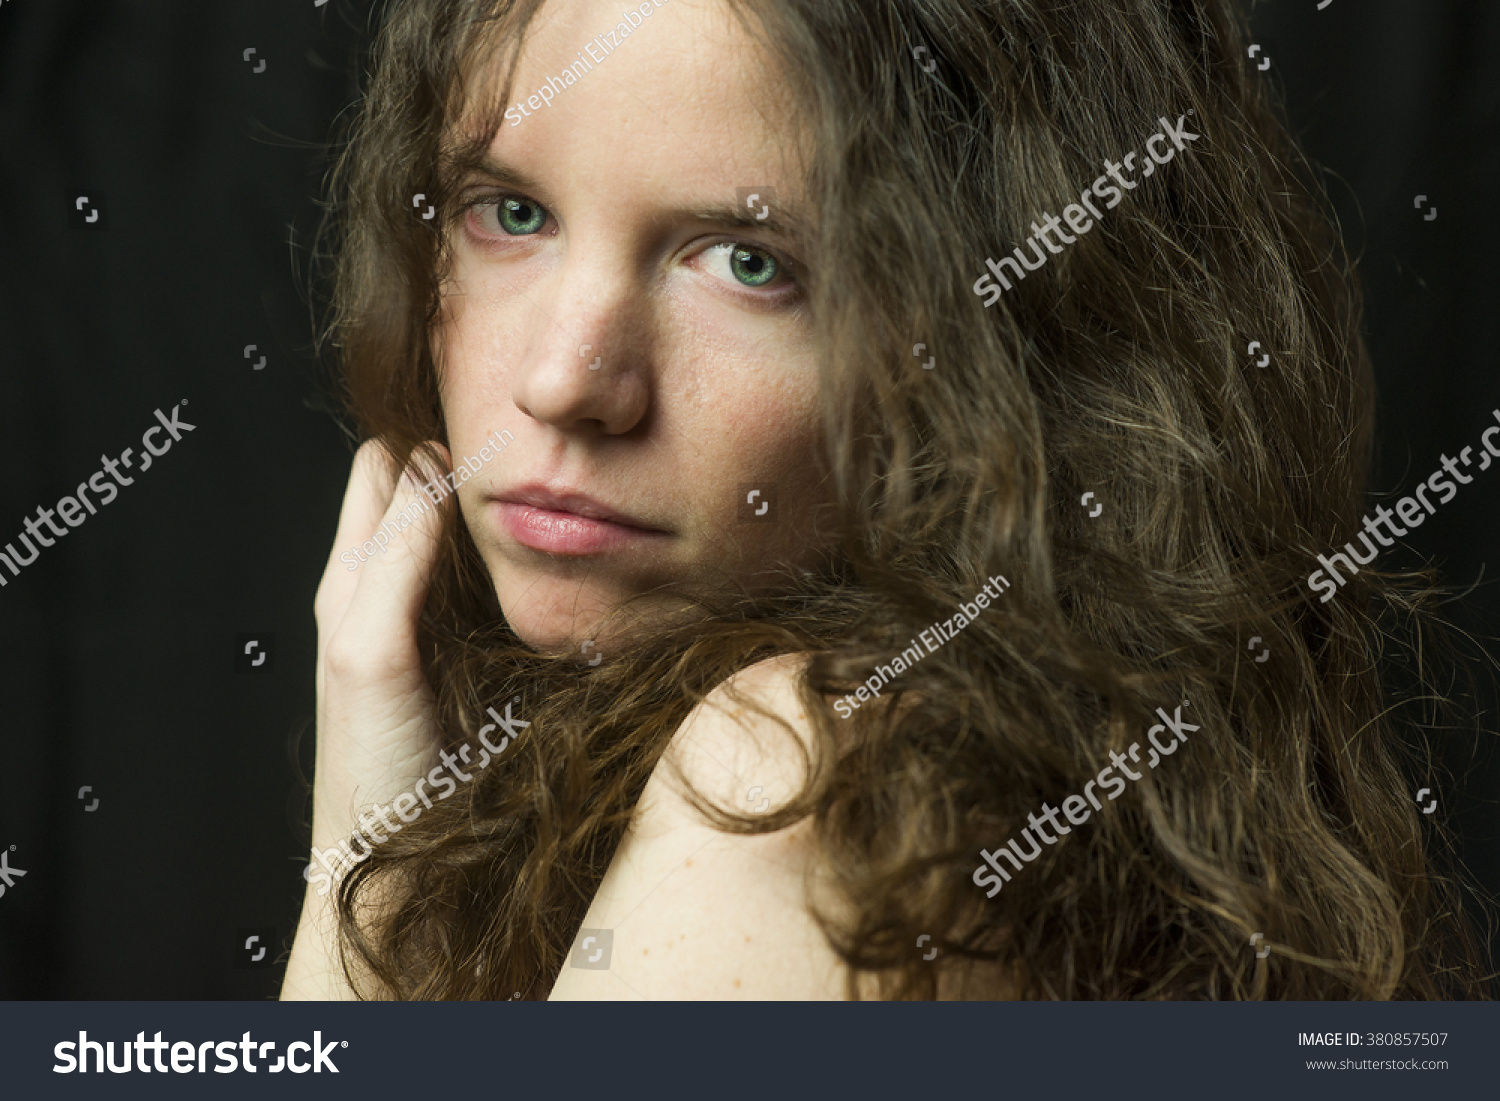 dramatic studio lighting. Brunette Girl With Blue Eyes In Dramatic Studio Lighting